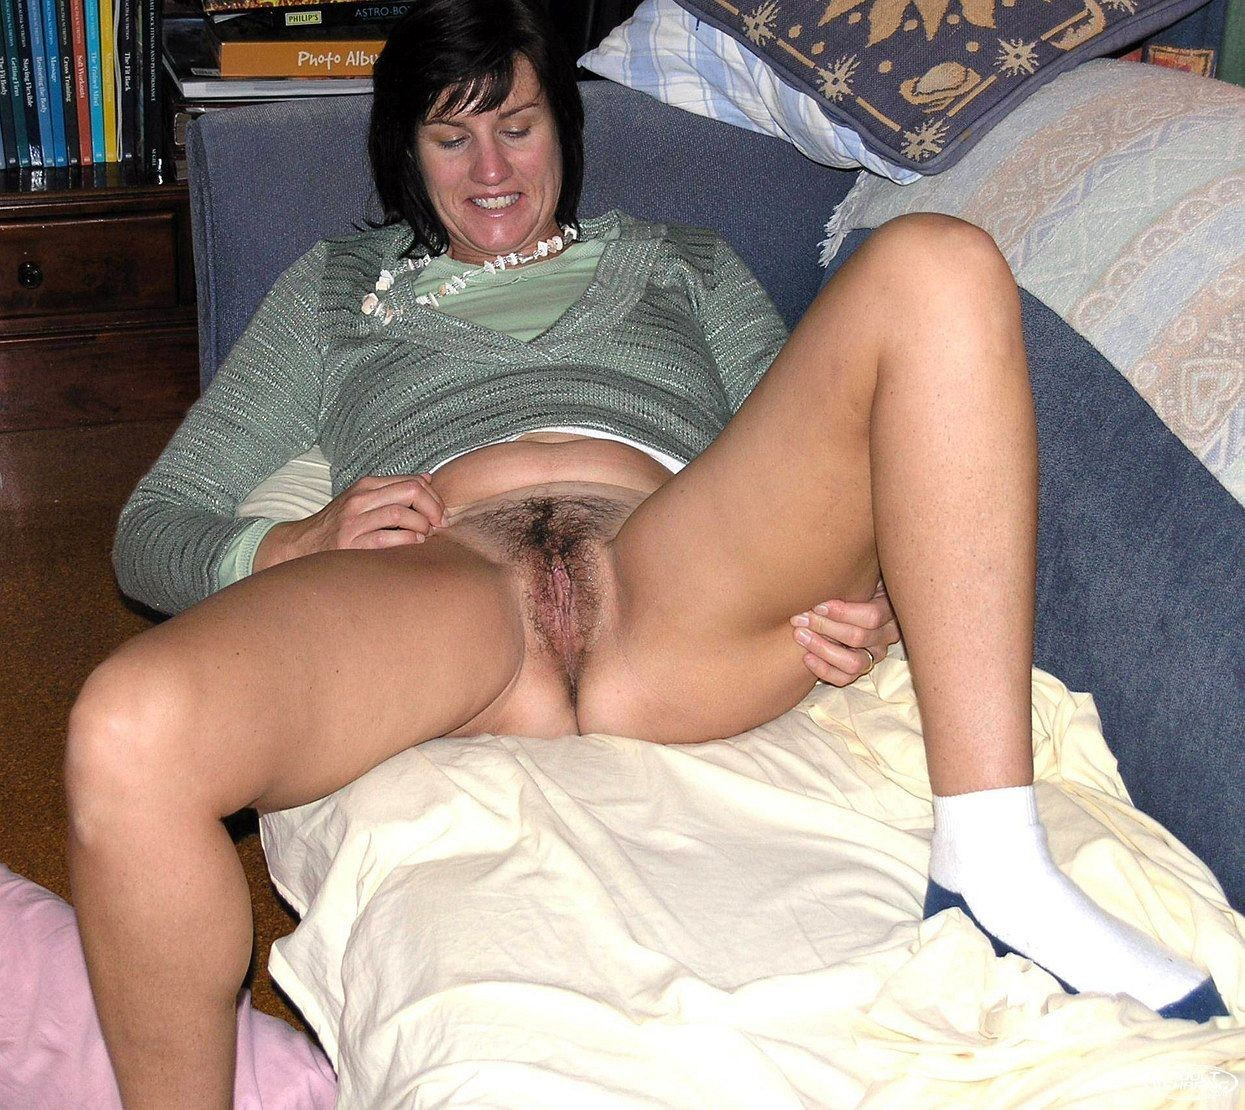 remarkable, rather chubby horny mature milf sense. can not